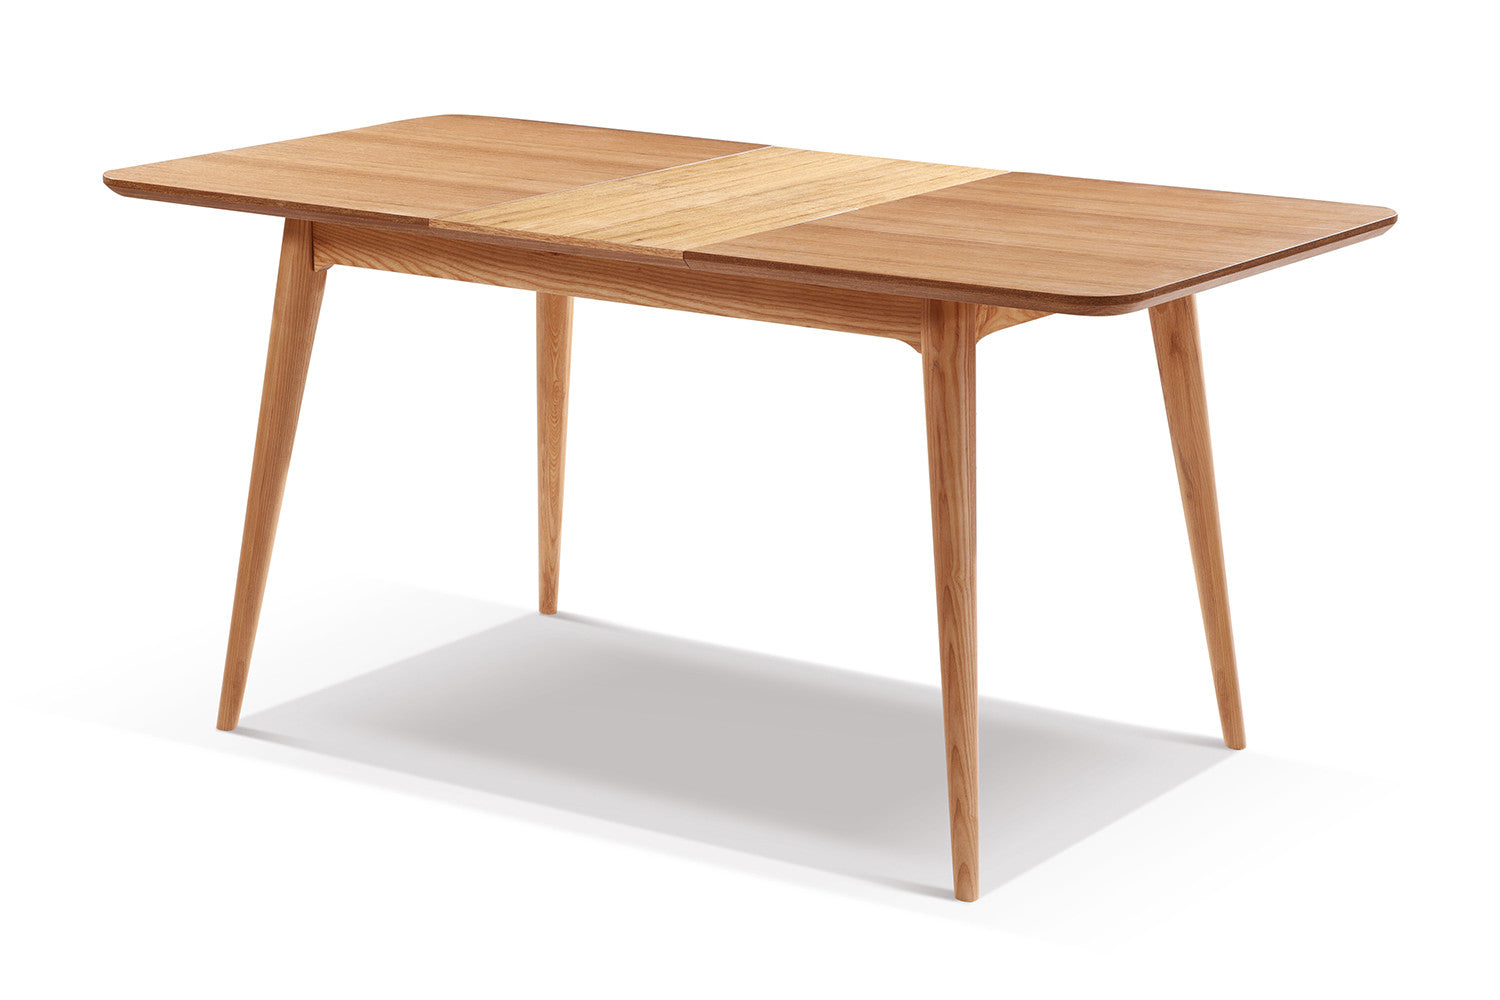 Table de salle manger extensible en bois adda dewarens for Table salle a manger evolutive